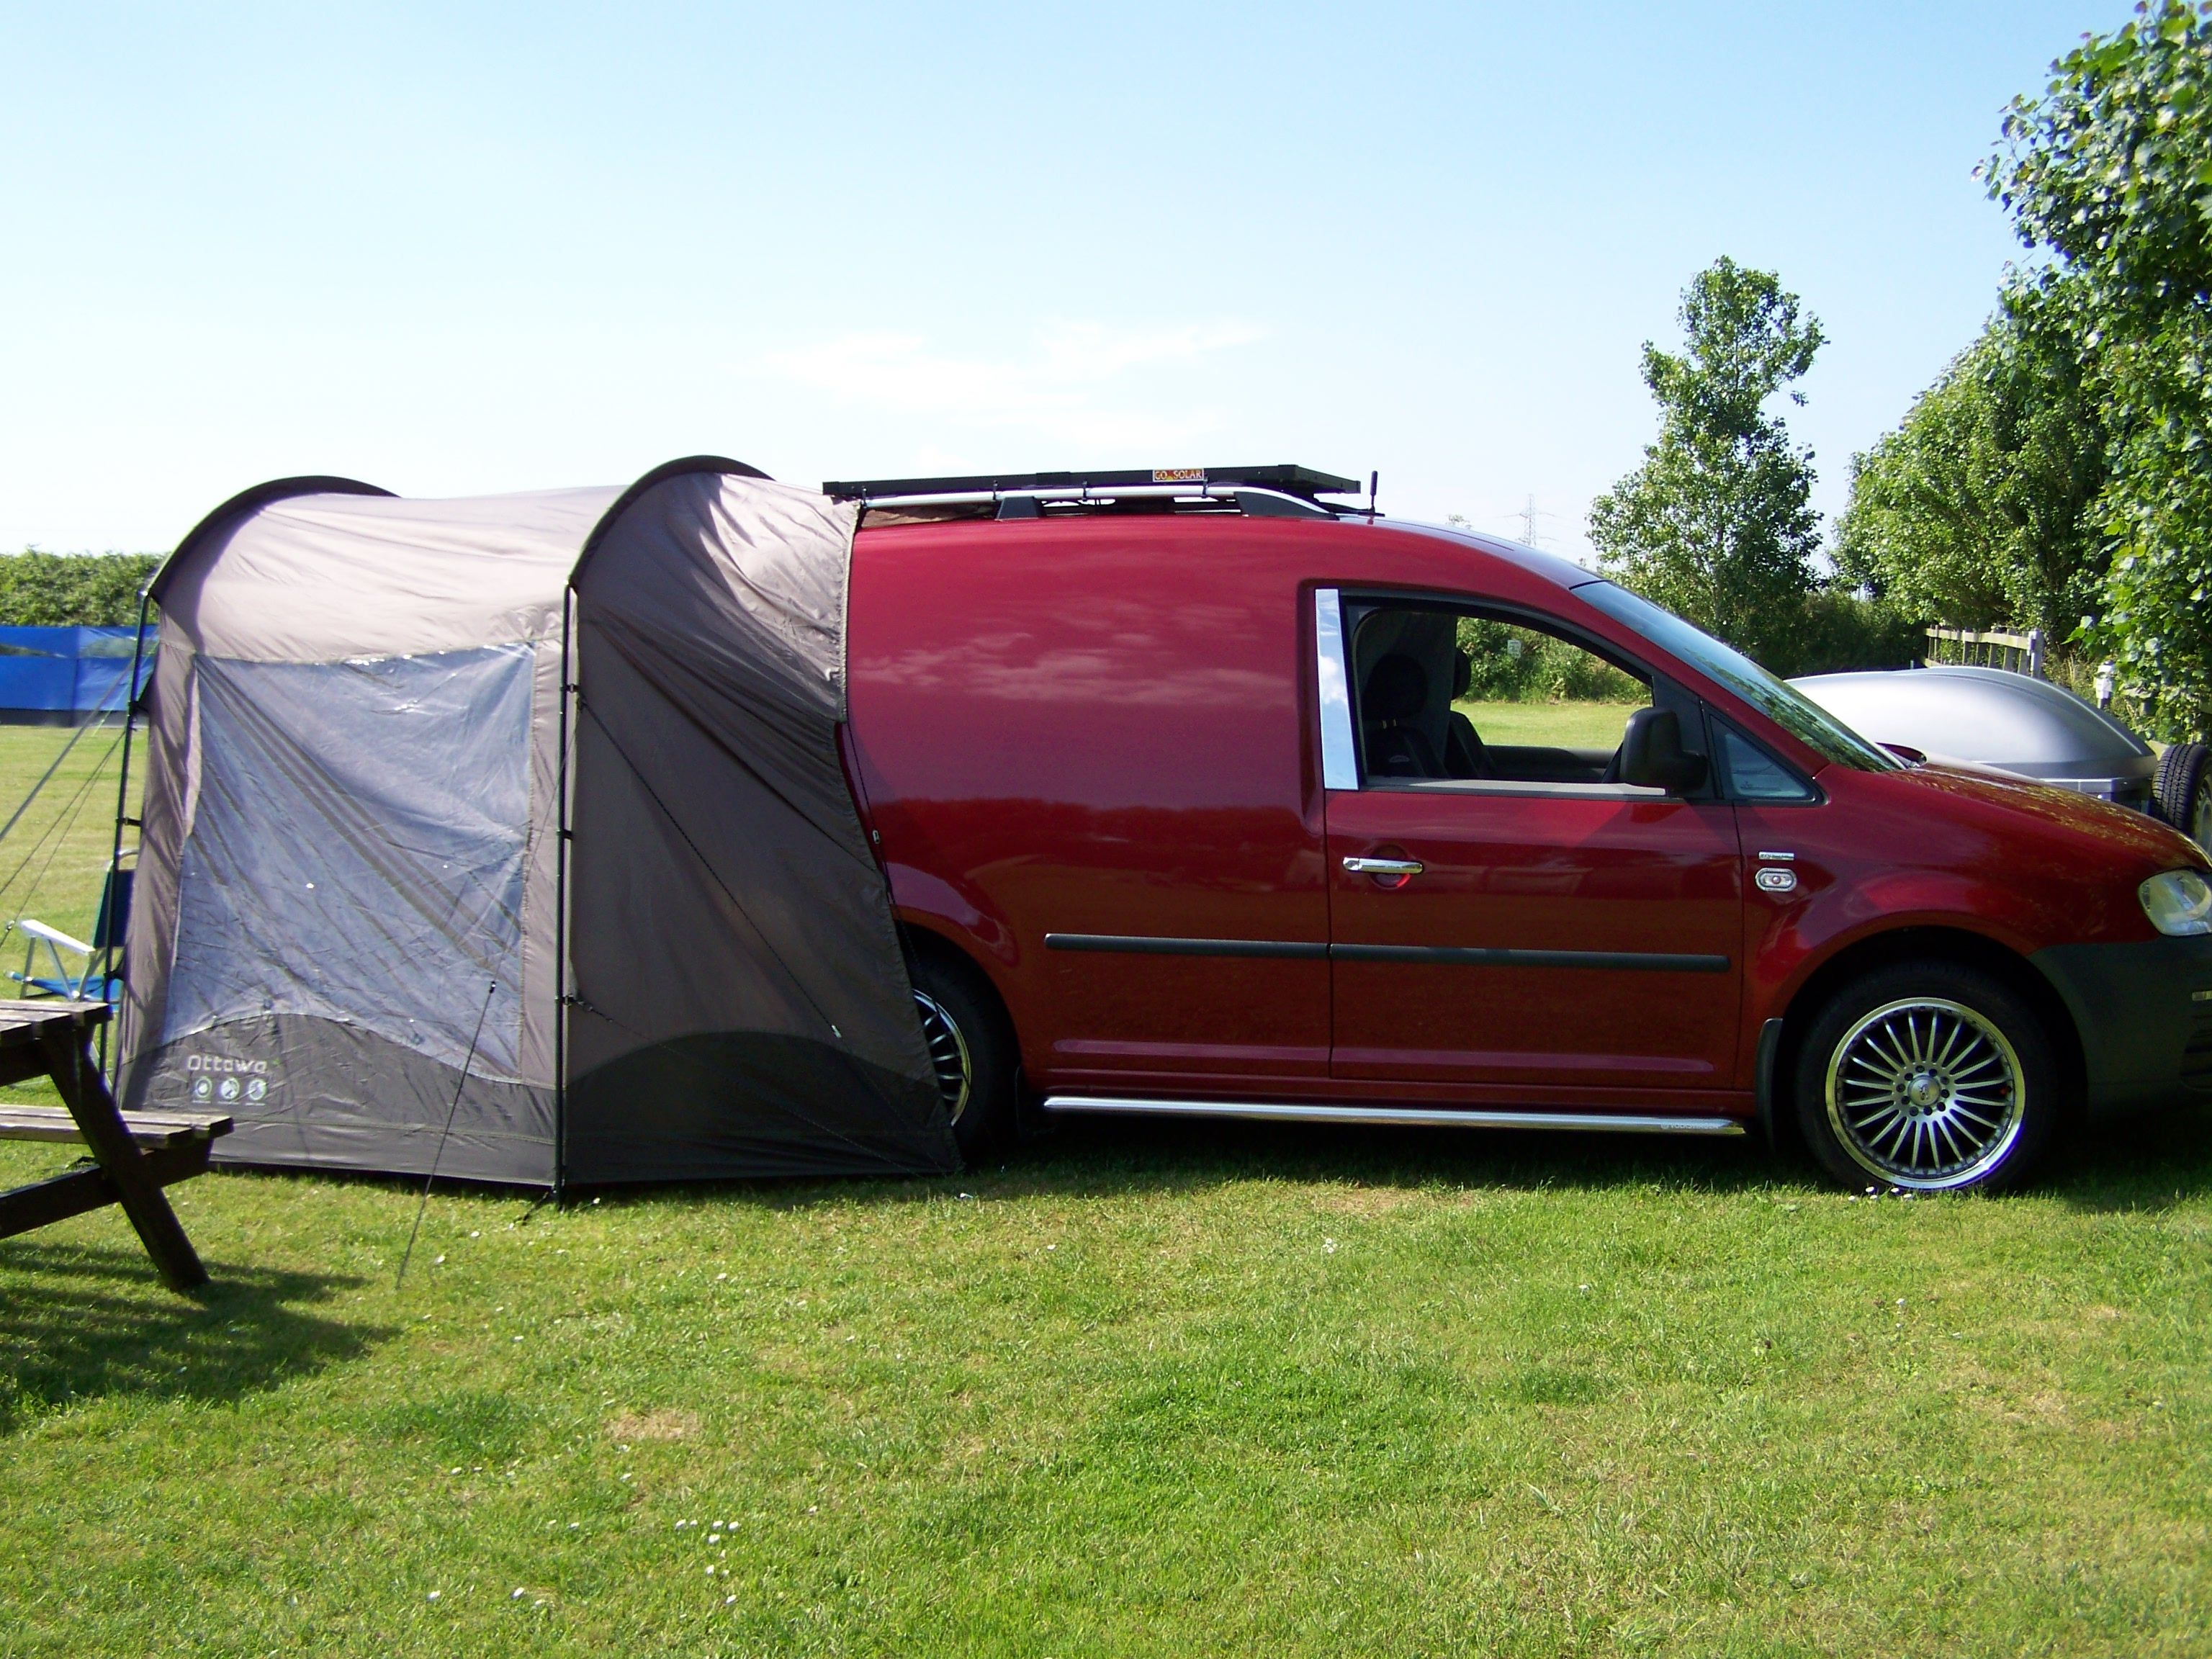 vw caddy solar camper the size of awning is 3 metres x 2. Black Bedroom Furniture Sets. Home Design Ideas